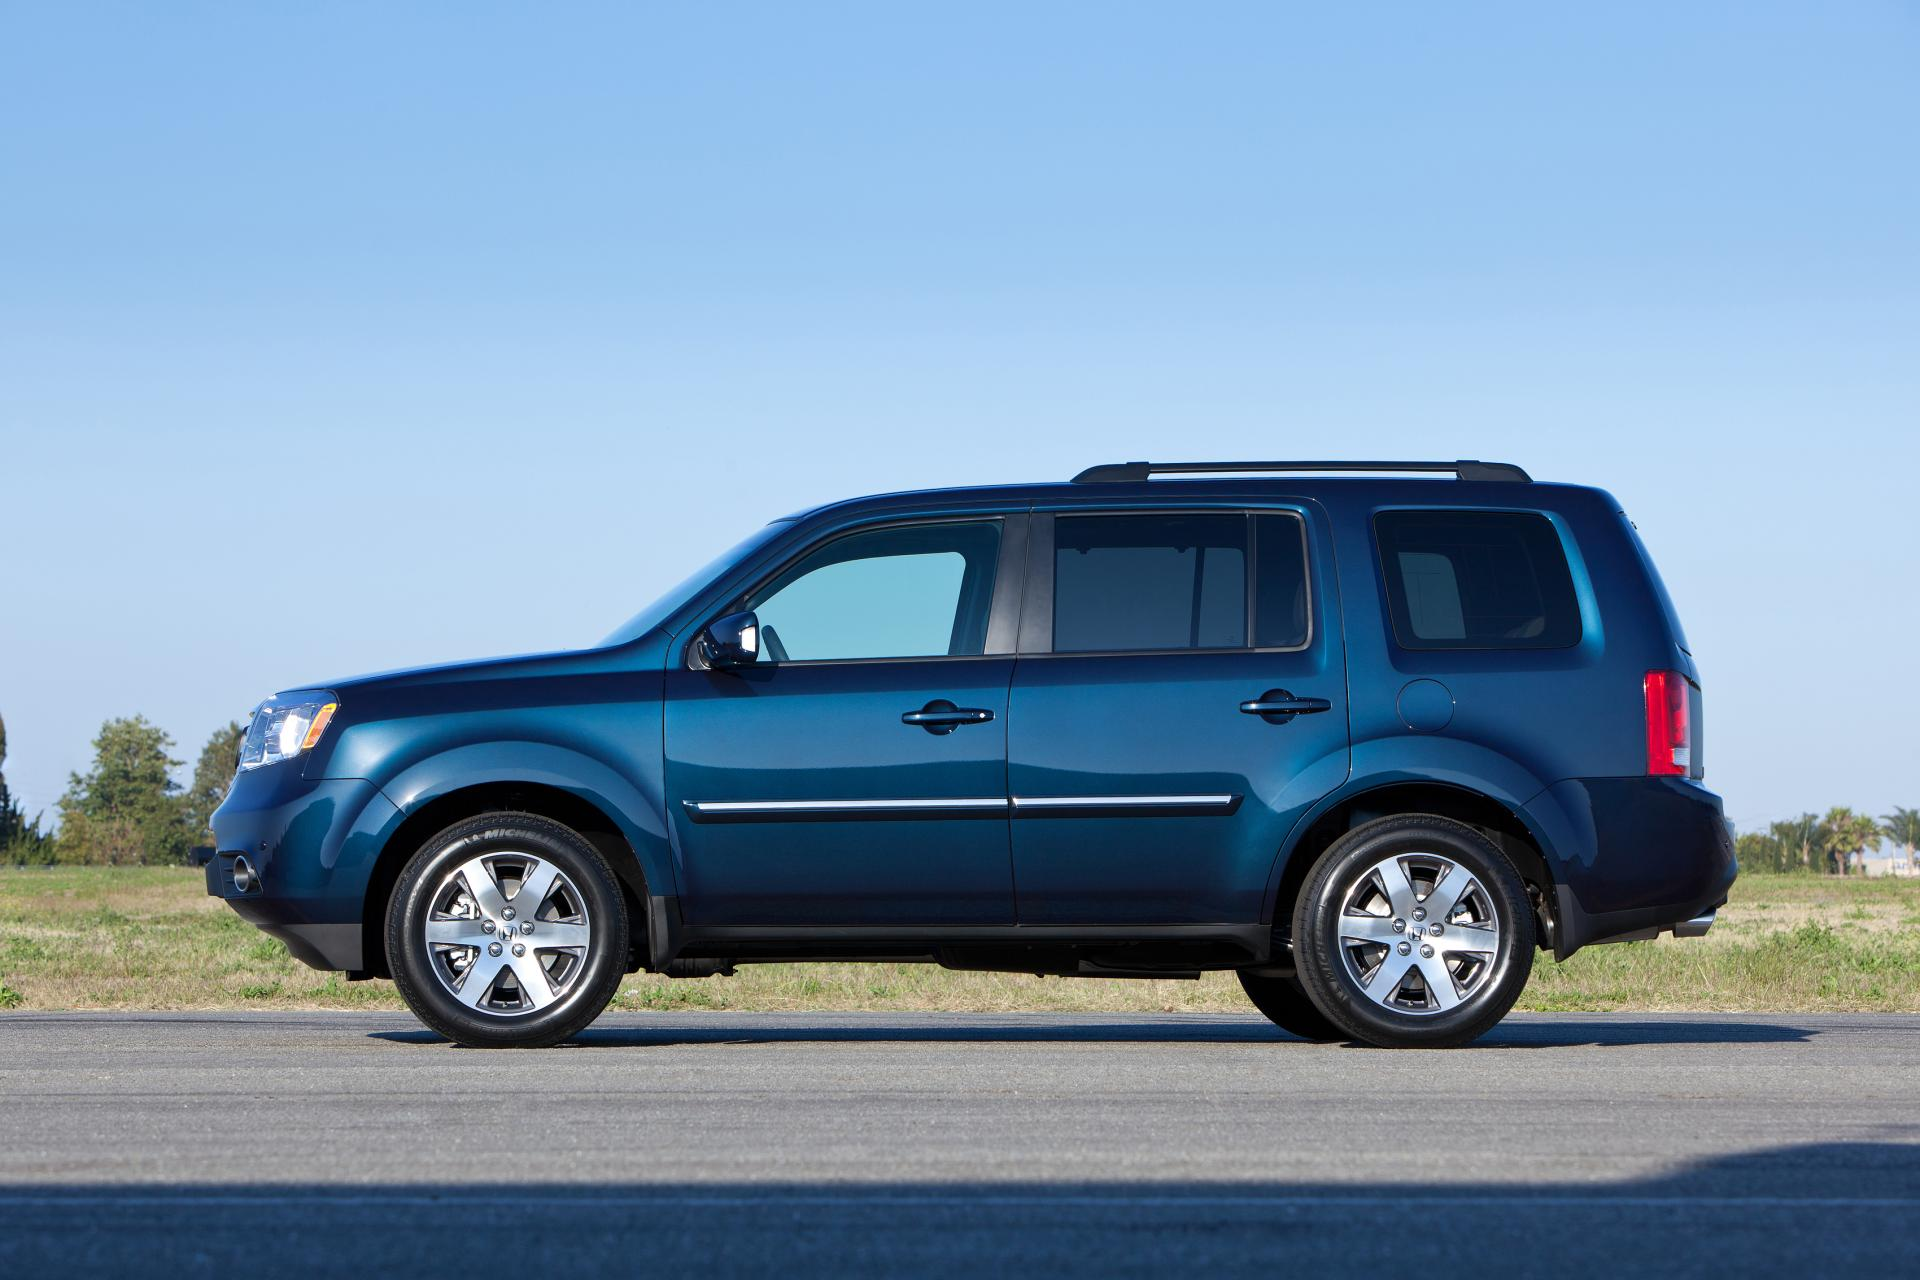 2012 Honda Pilot News and Information - conceptcarz.com